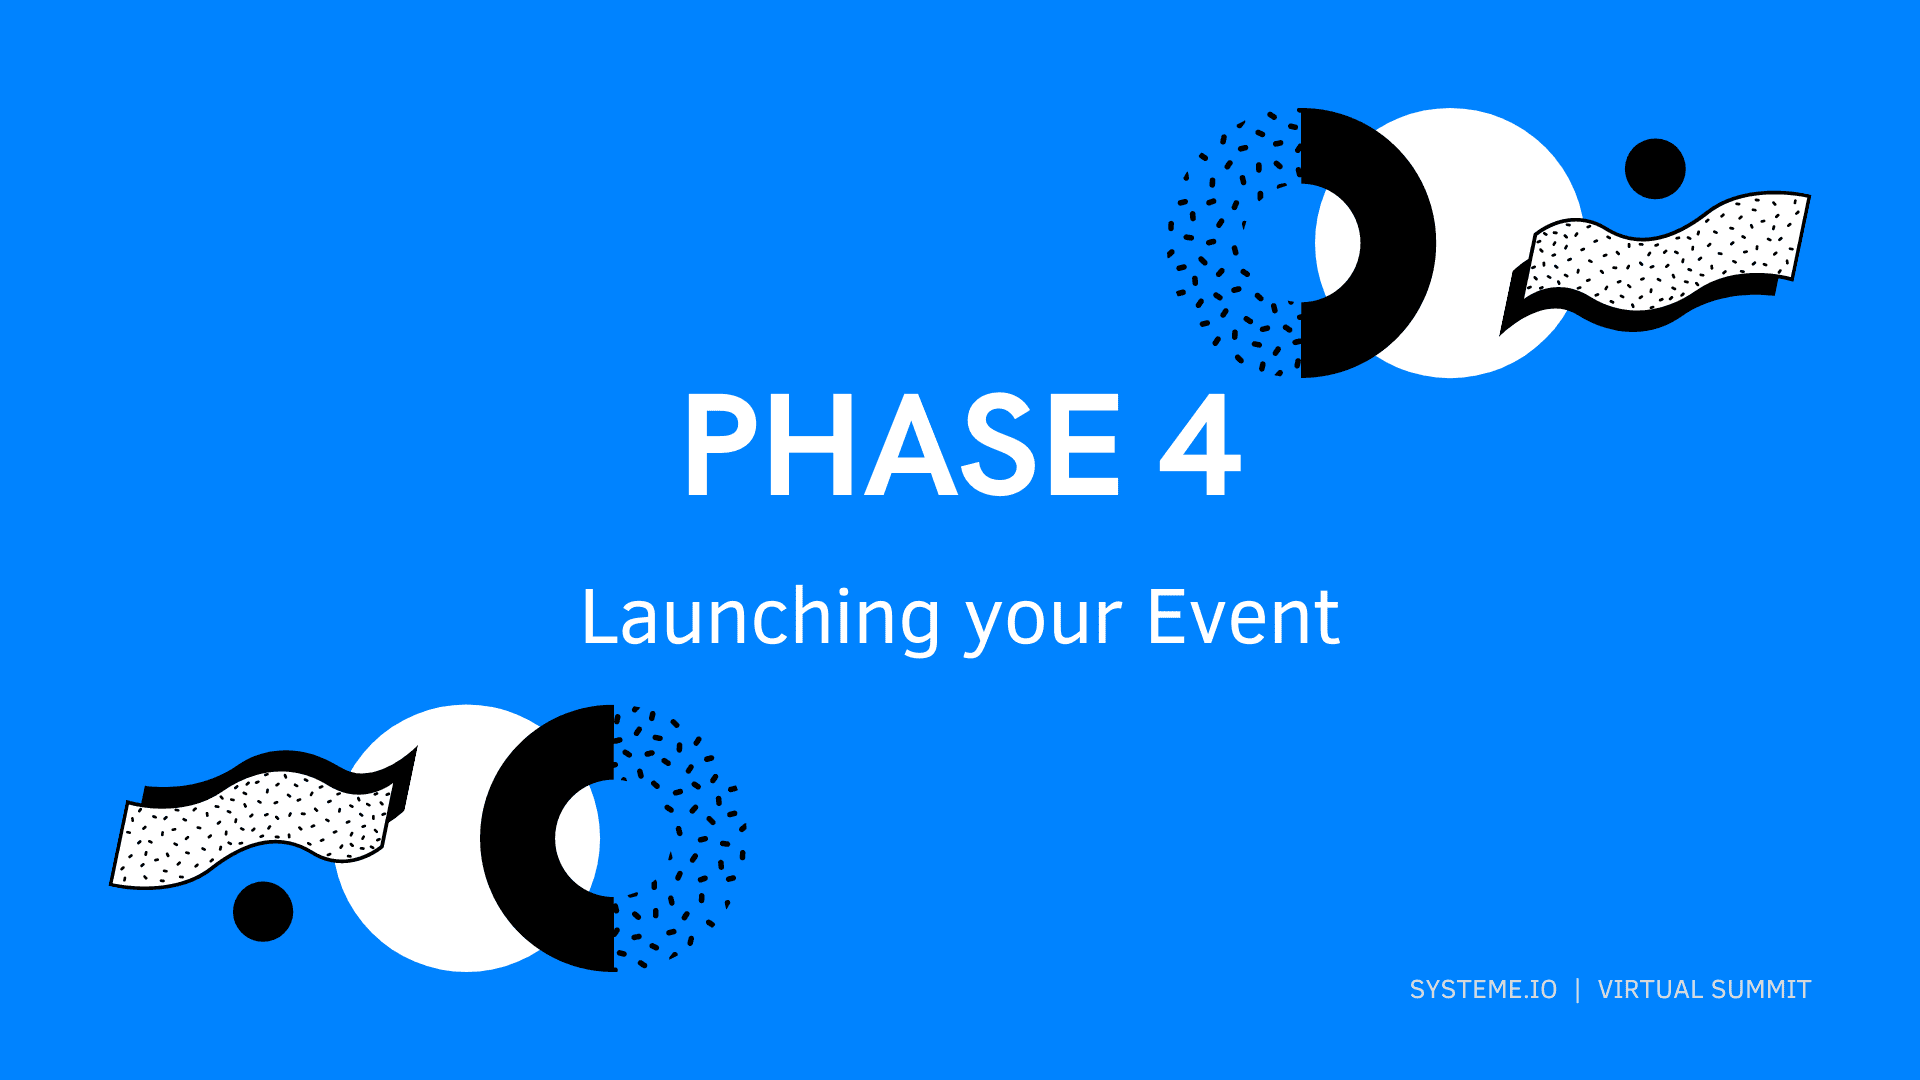 Phase 4 — Launching your Event